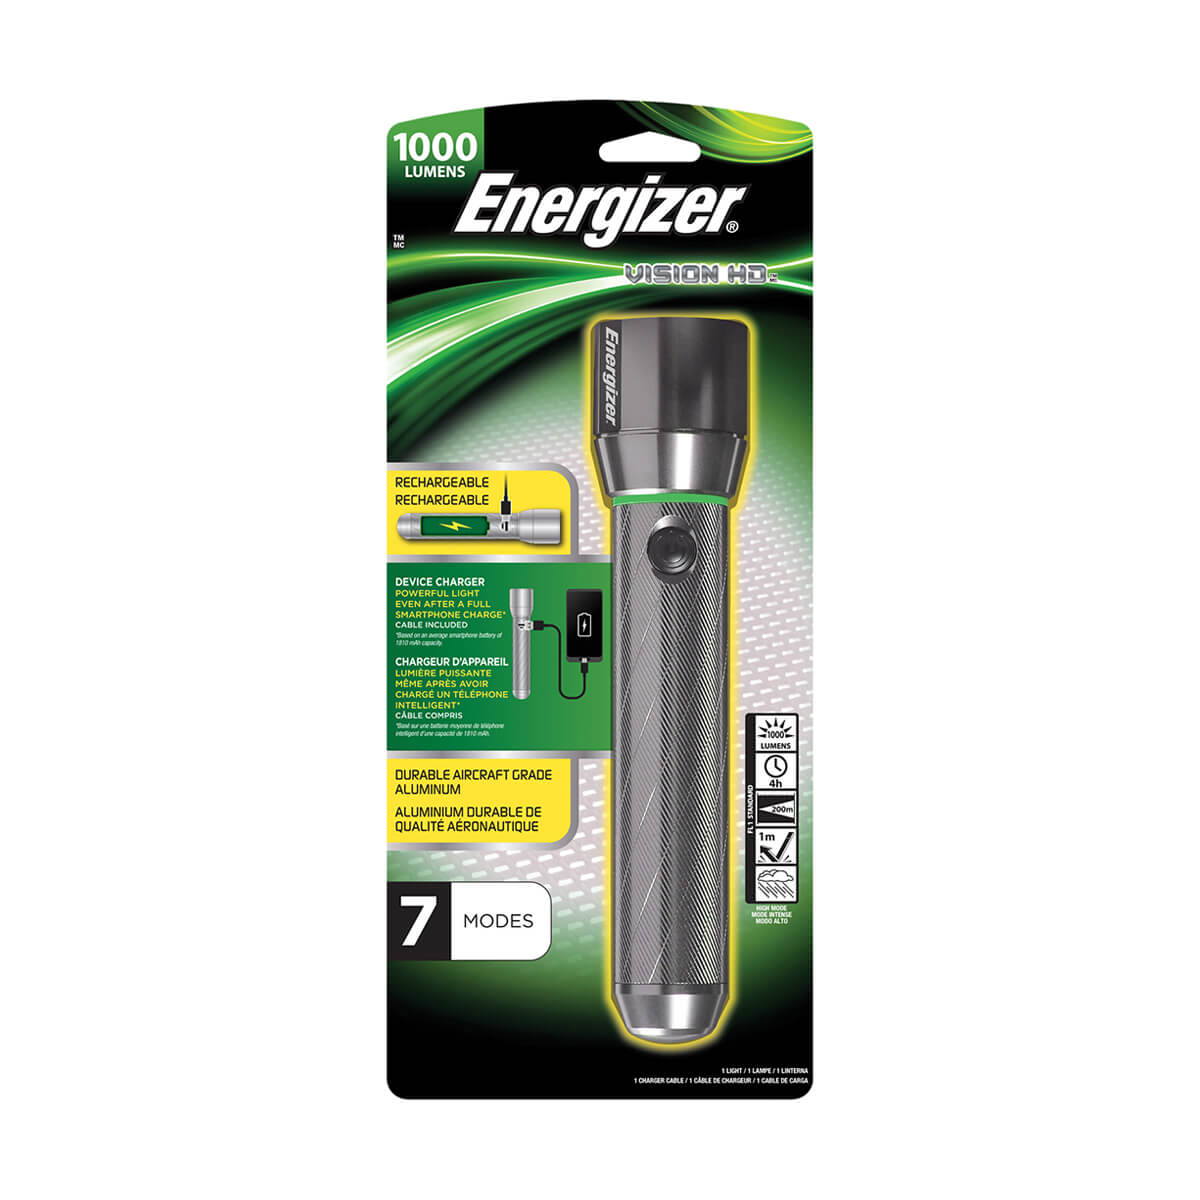 Energizer Vision HD Rechargeable Flashlight - 1000 lumens